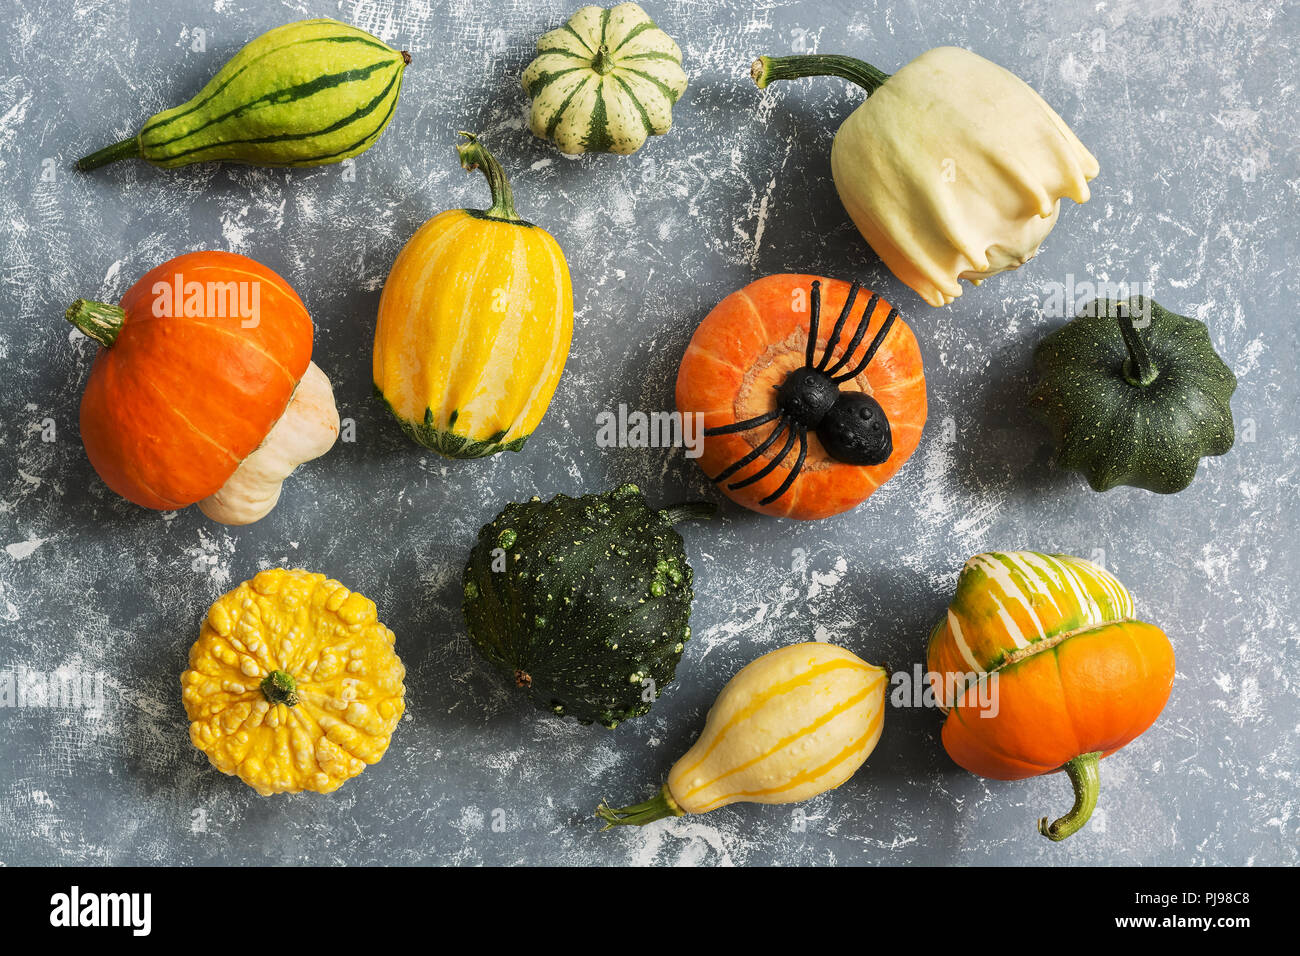 Harvest a variety of pumpkins and spiders on a gray background. Halloween. Top view - Stock Image